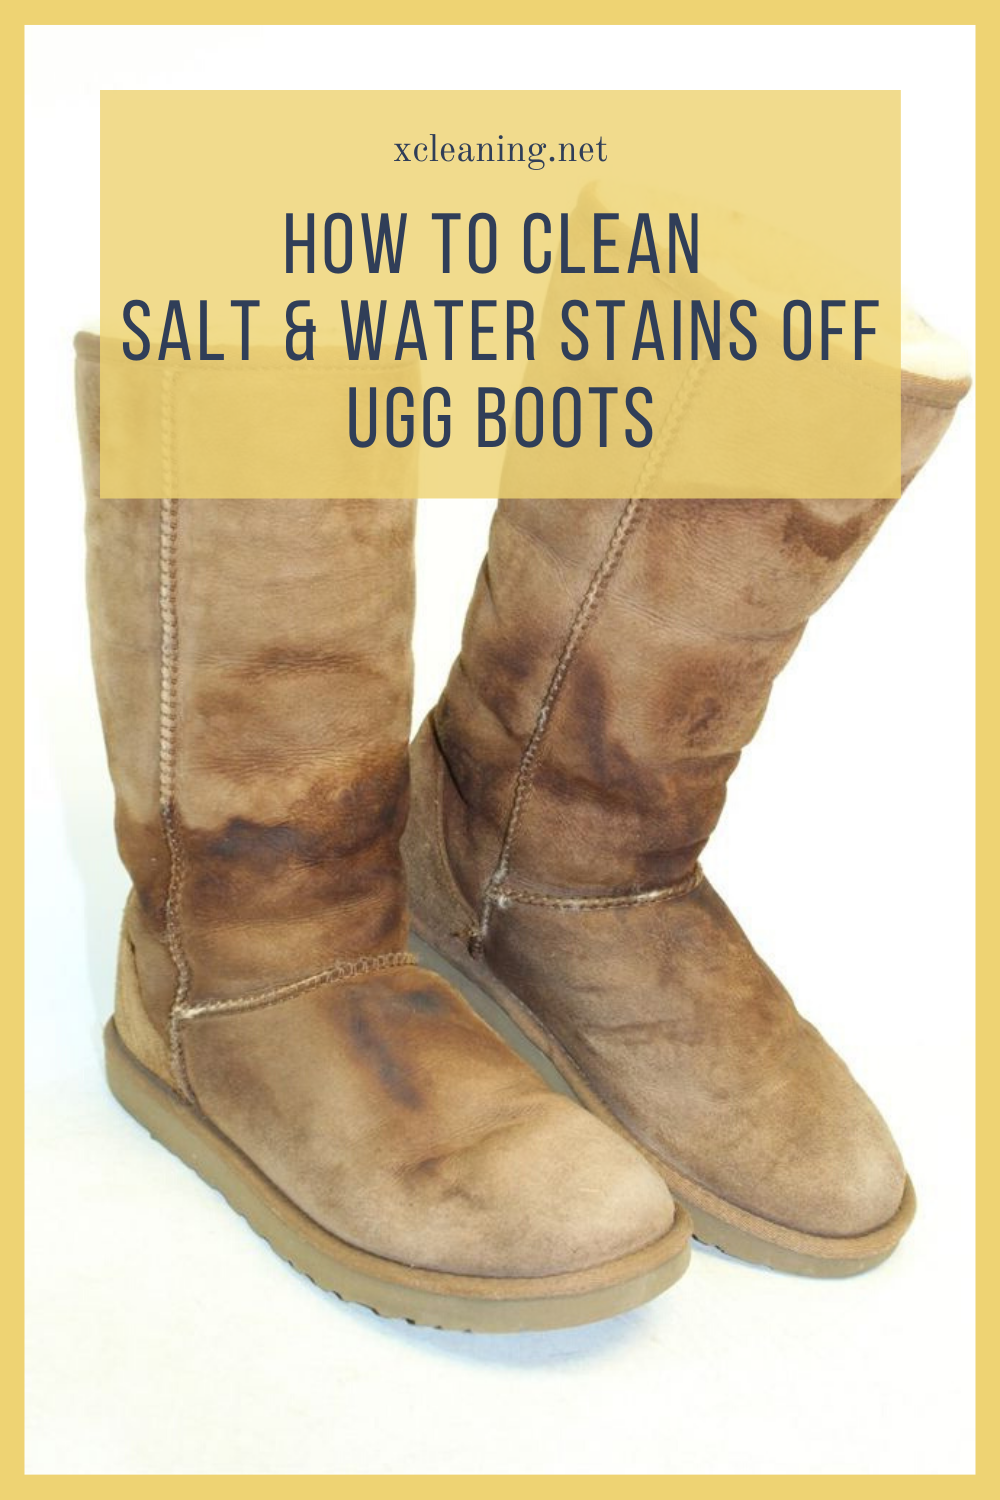 How To Clean Salt And Water Stains Off Ugg Boots Xcleaning Your Cleaning Tips